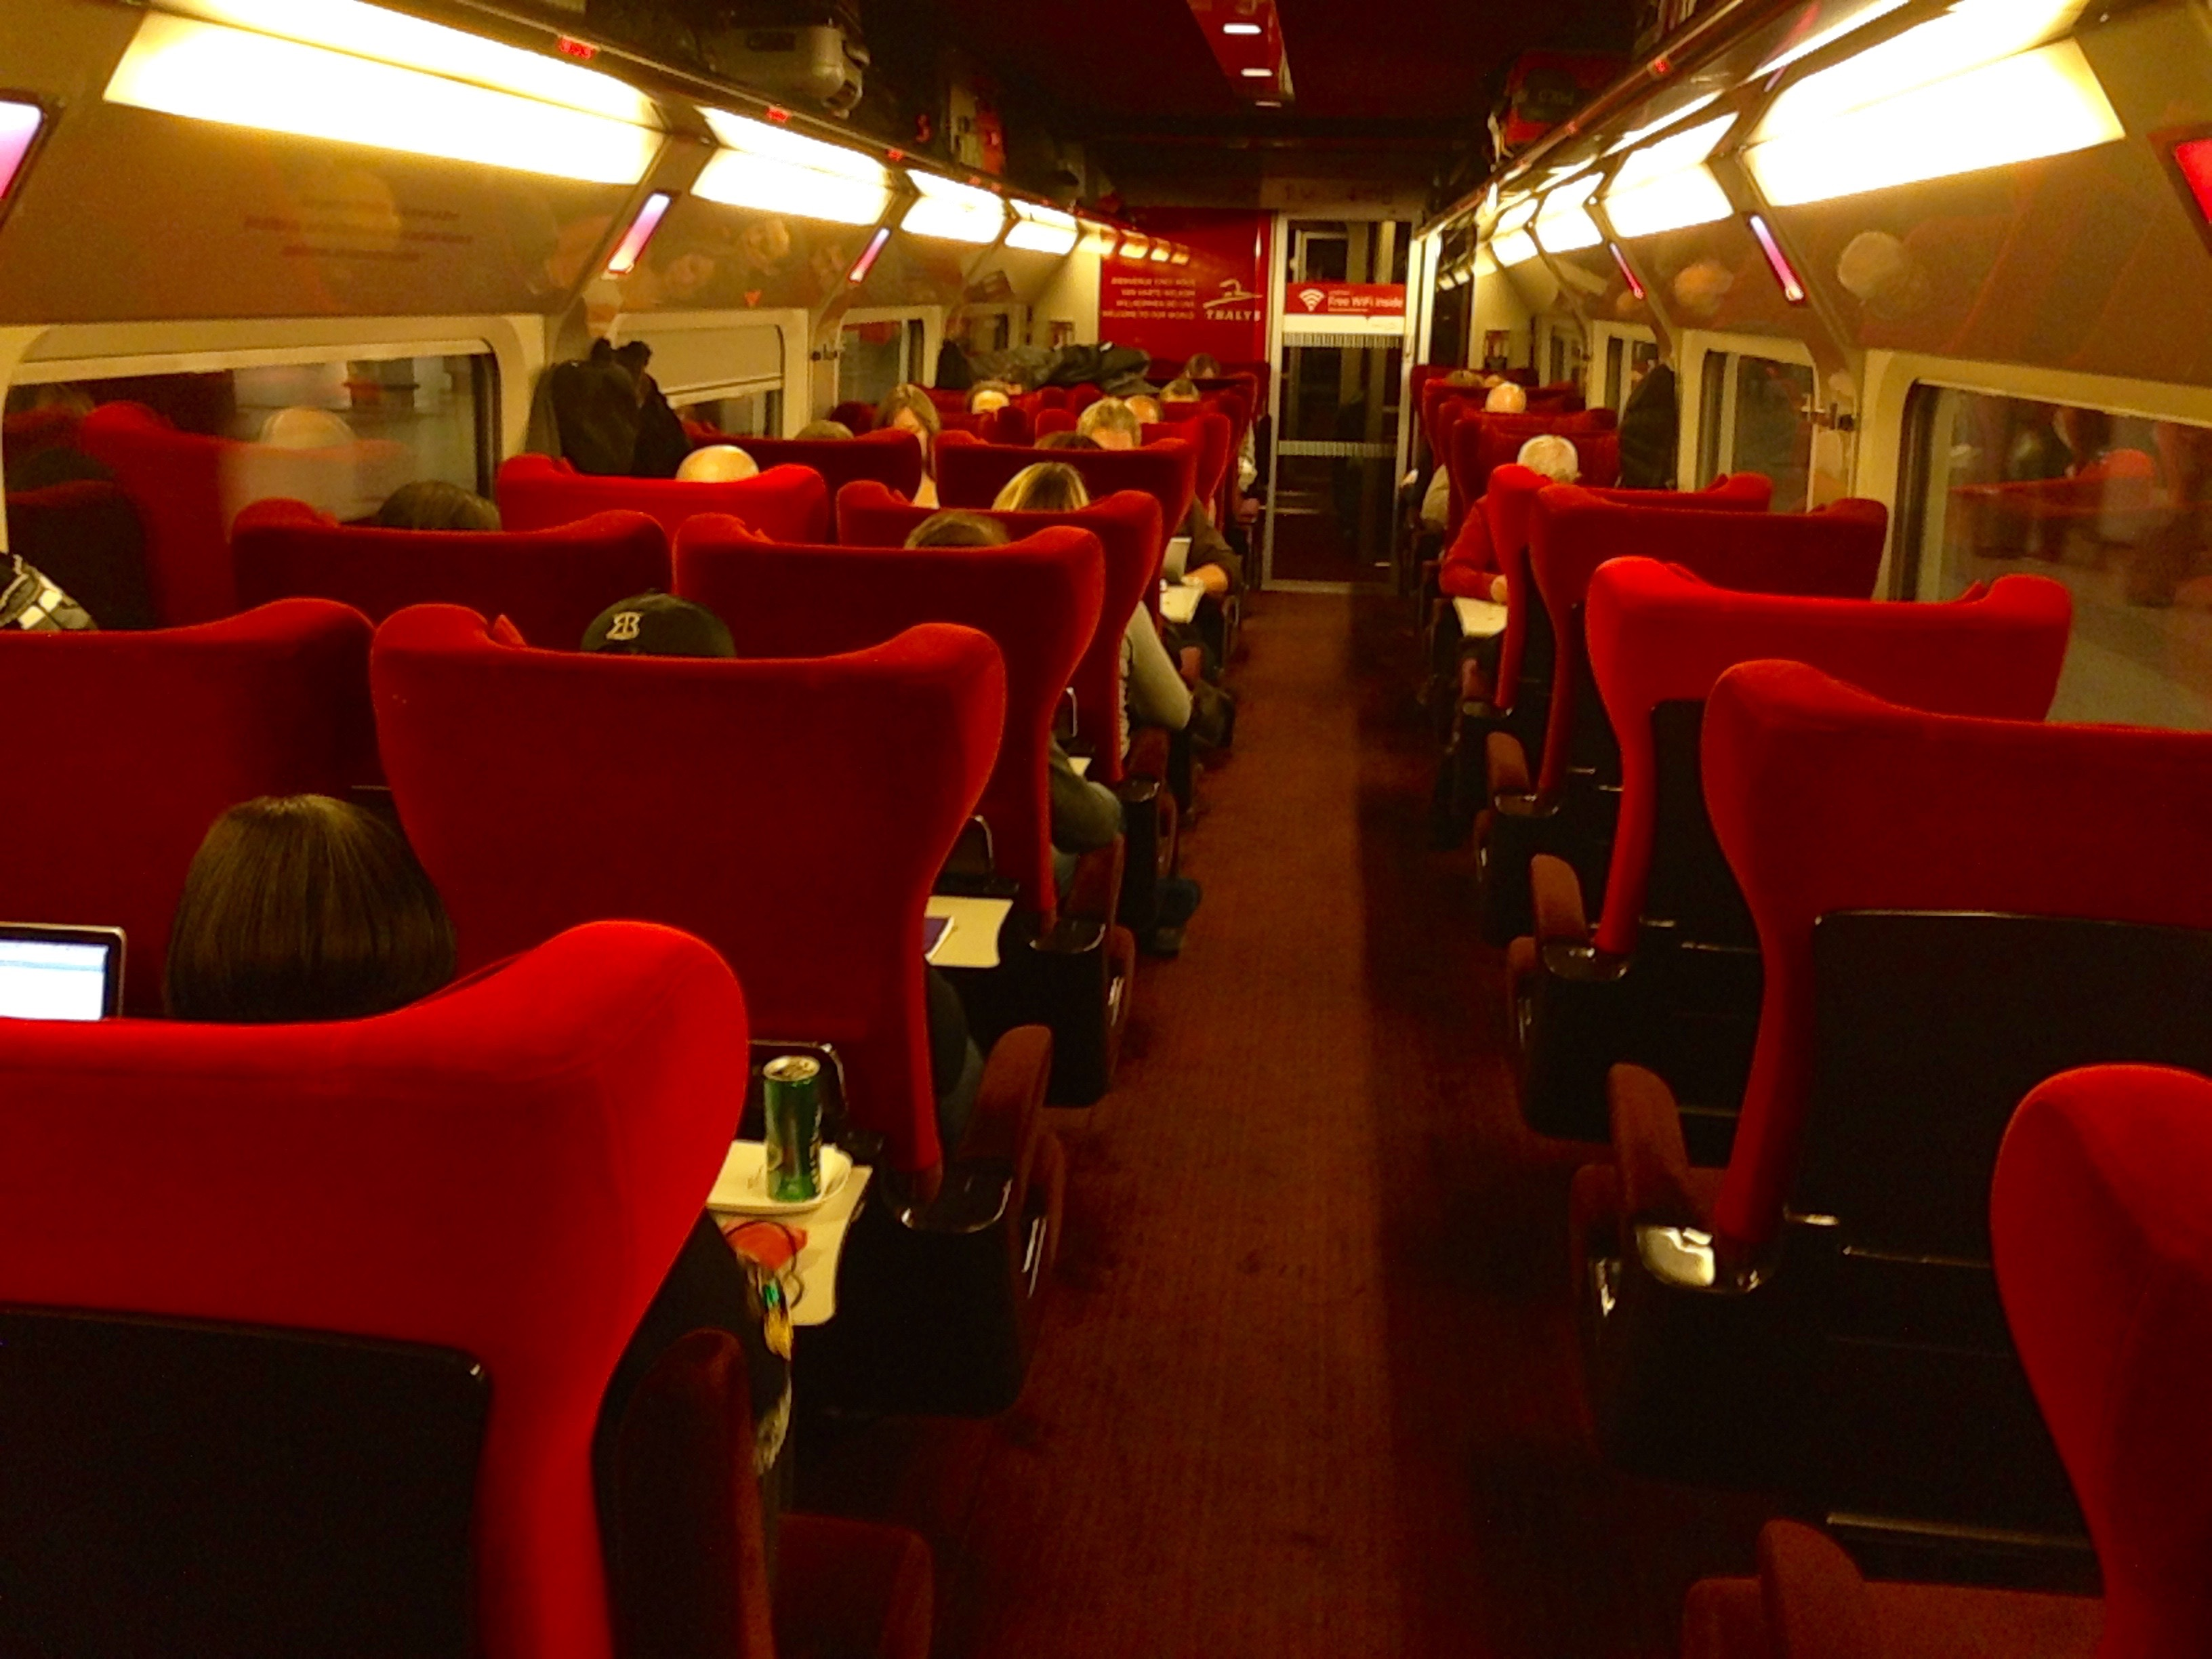 Thalys Comfort 1 Car Interior Amsterdam to Paris